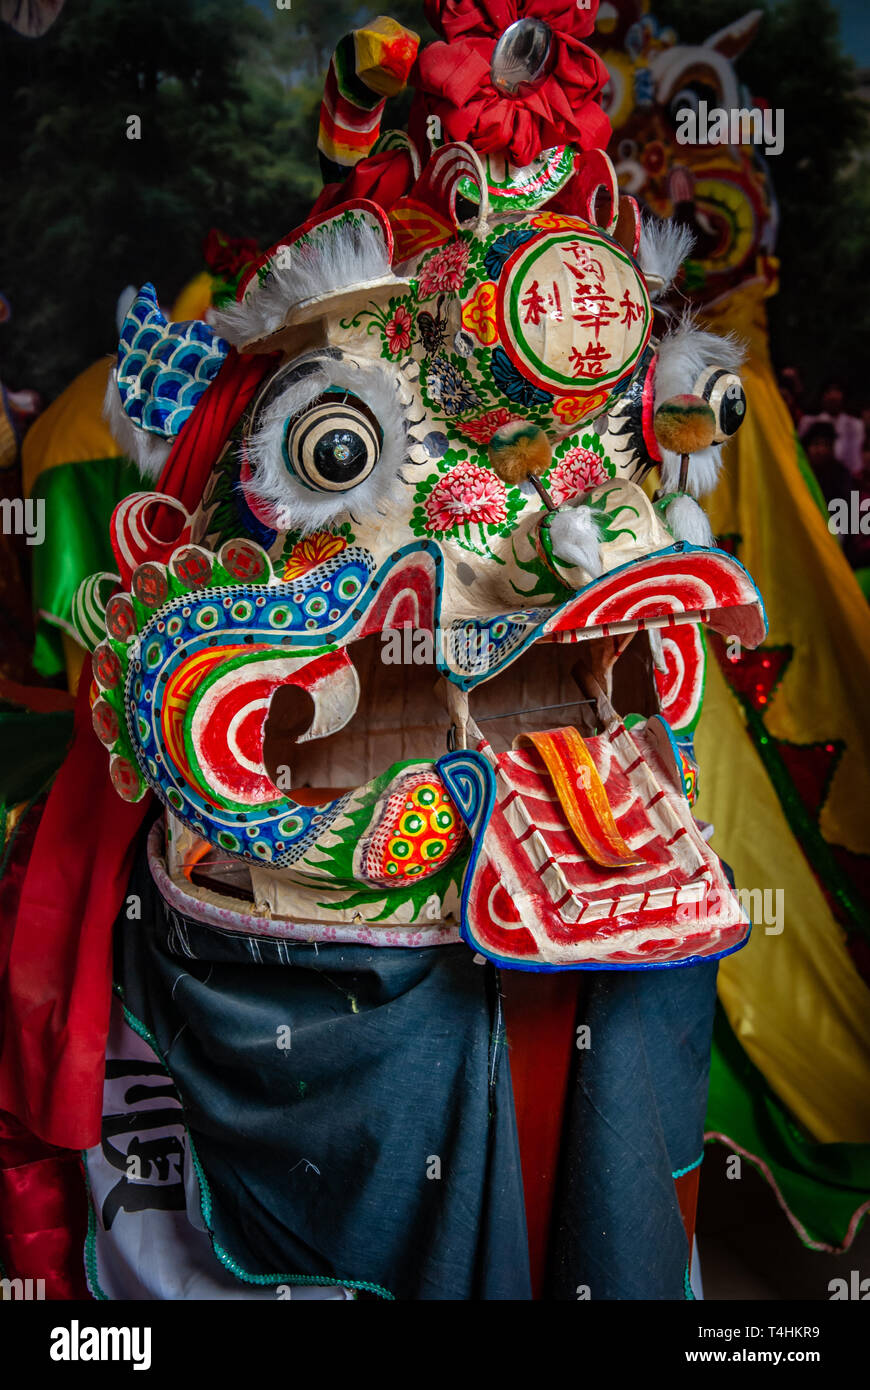 e193ffca5 closeup head dancing dragon china. Chinese lion dance costumes for Chinese  new year. Art